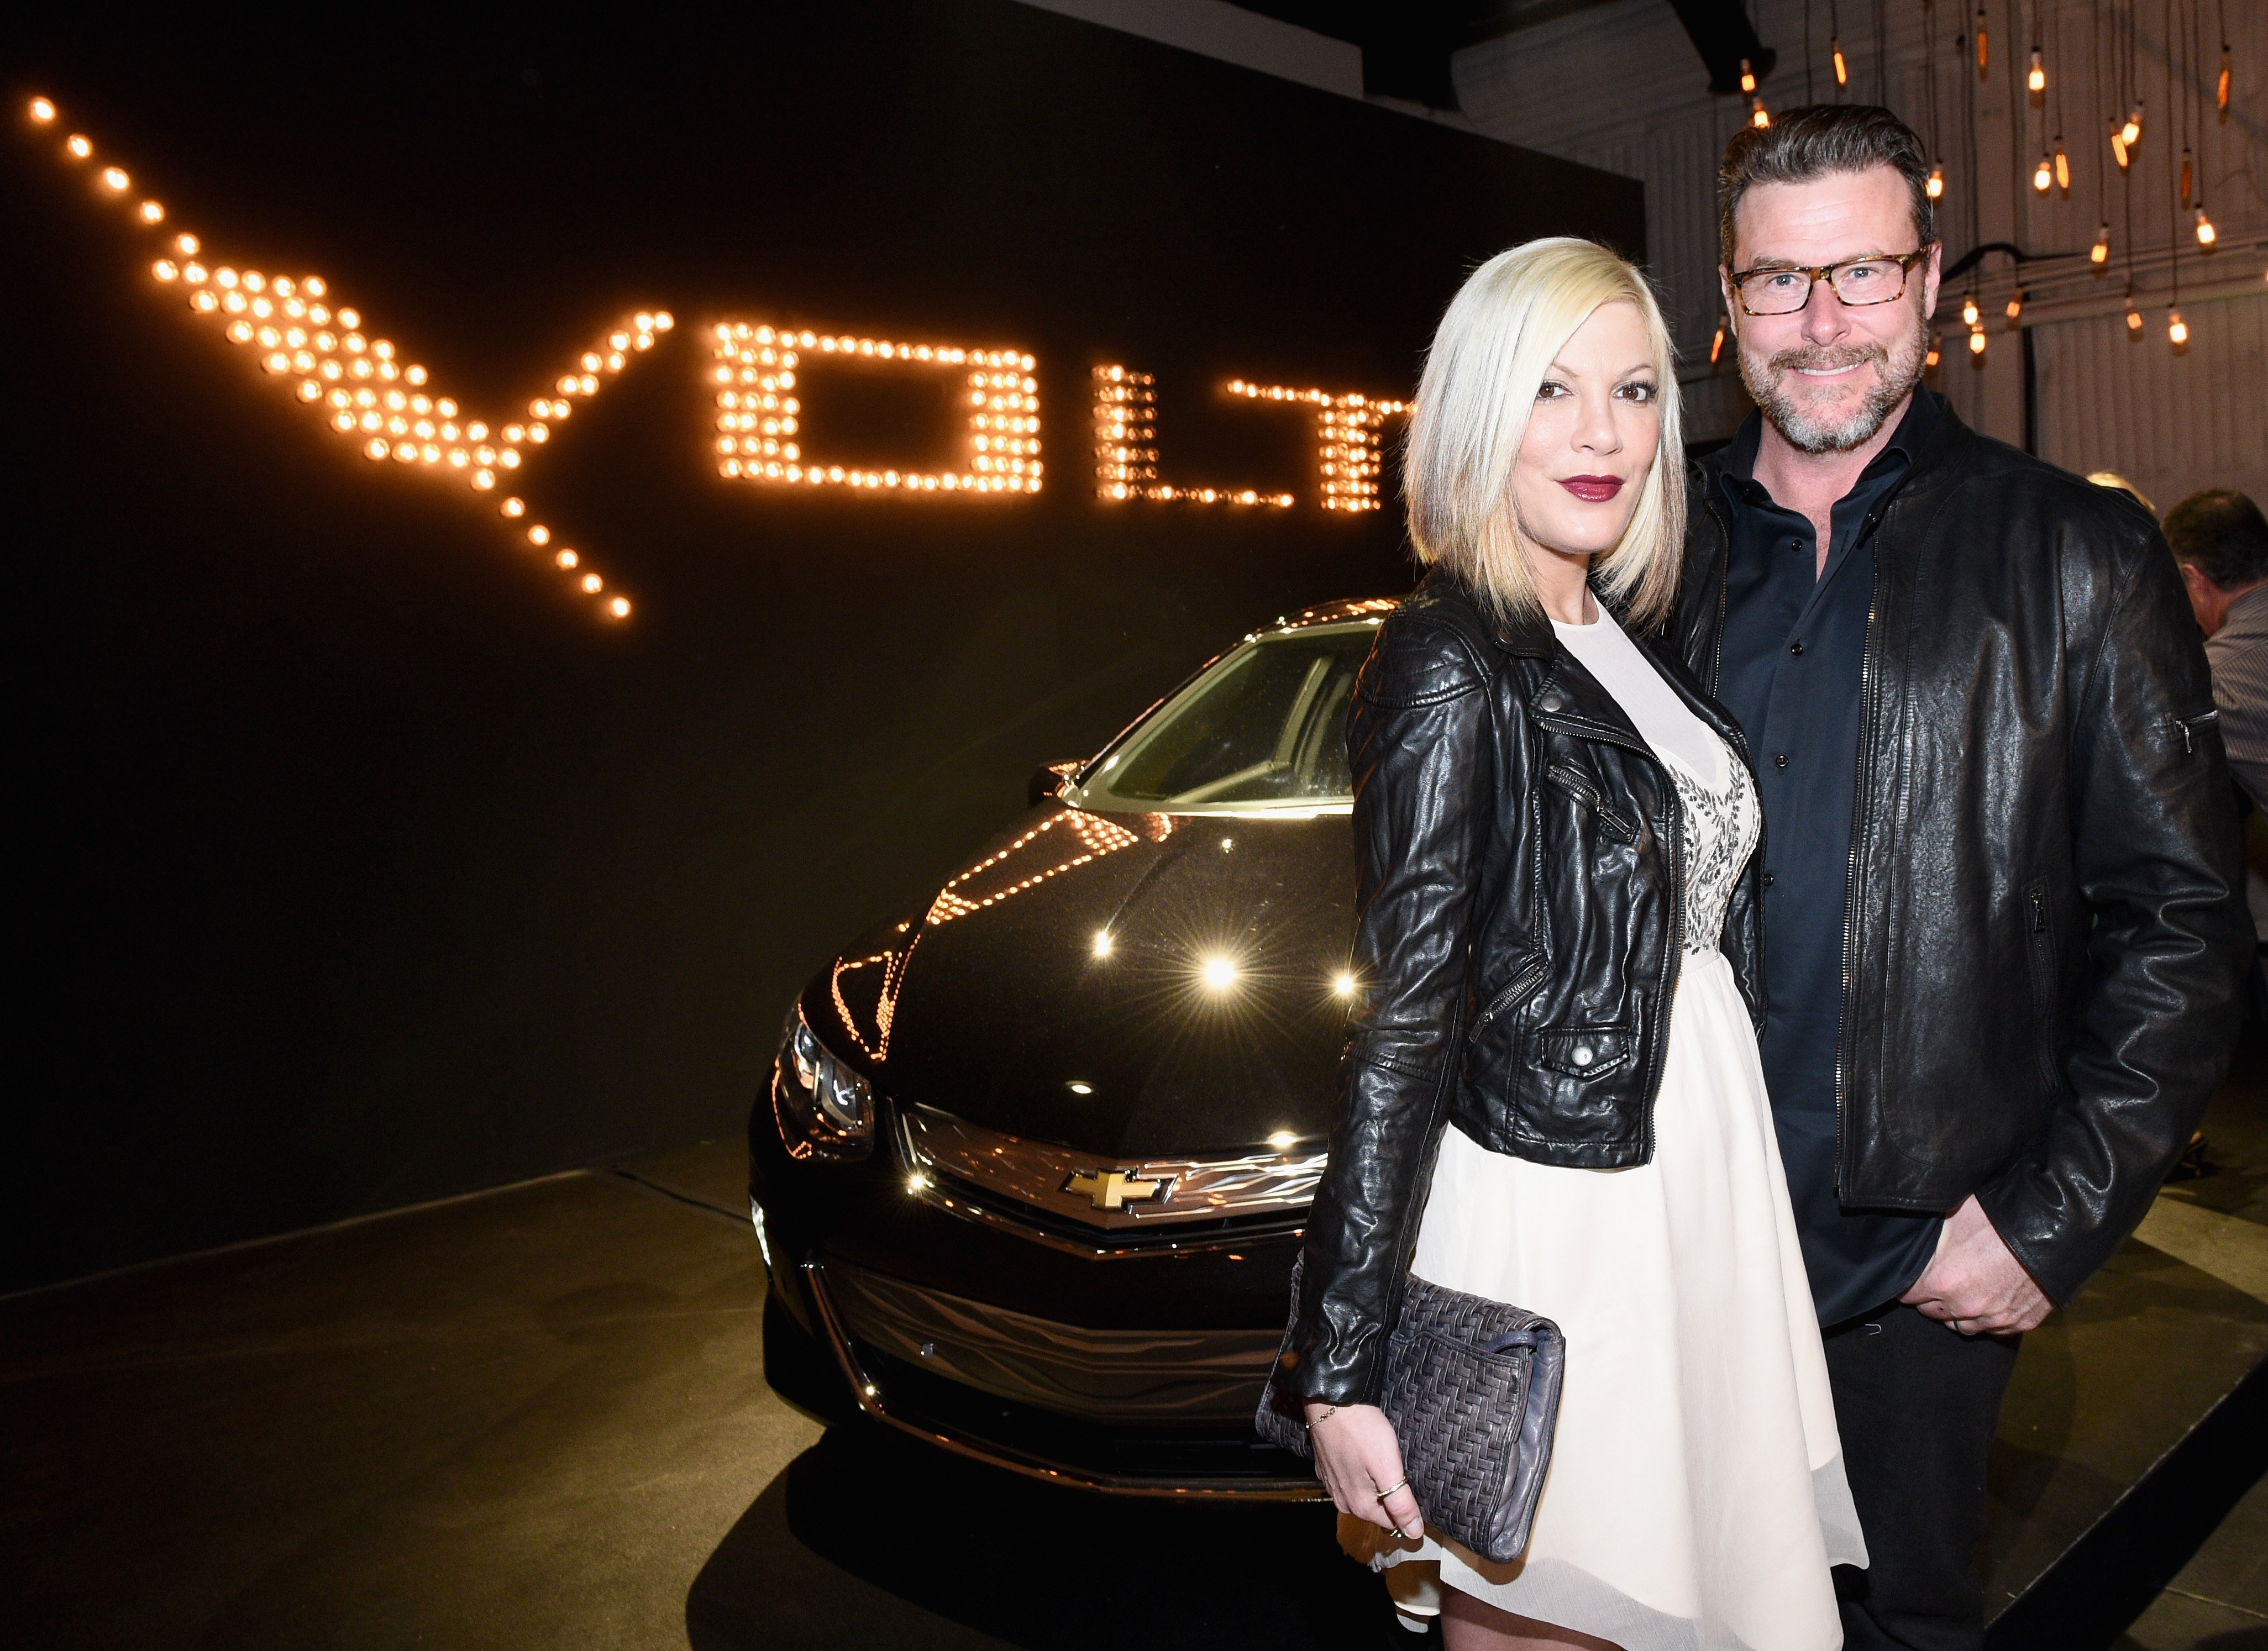 Tori Spelling (L) and Dean McDermott attend West Coast Reveal Of The New 2016 Next Generation Chevrolet Volt at Quixote Studios on January 12, 2015, in Los Angeles, California. | Source: Getty Images.